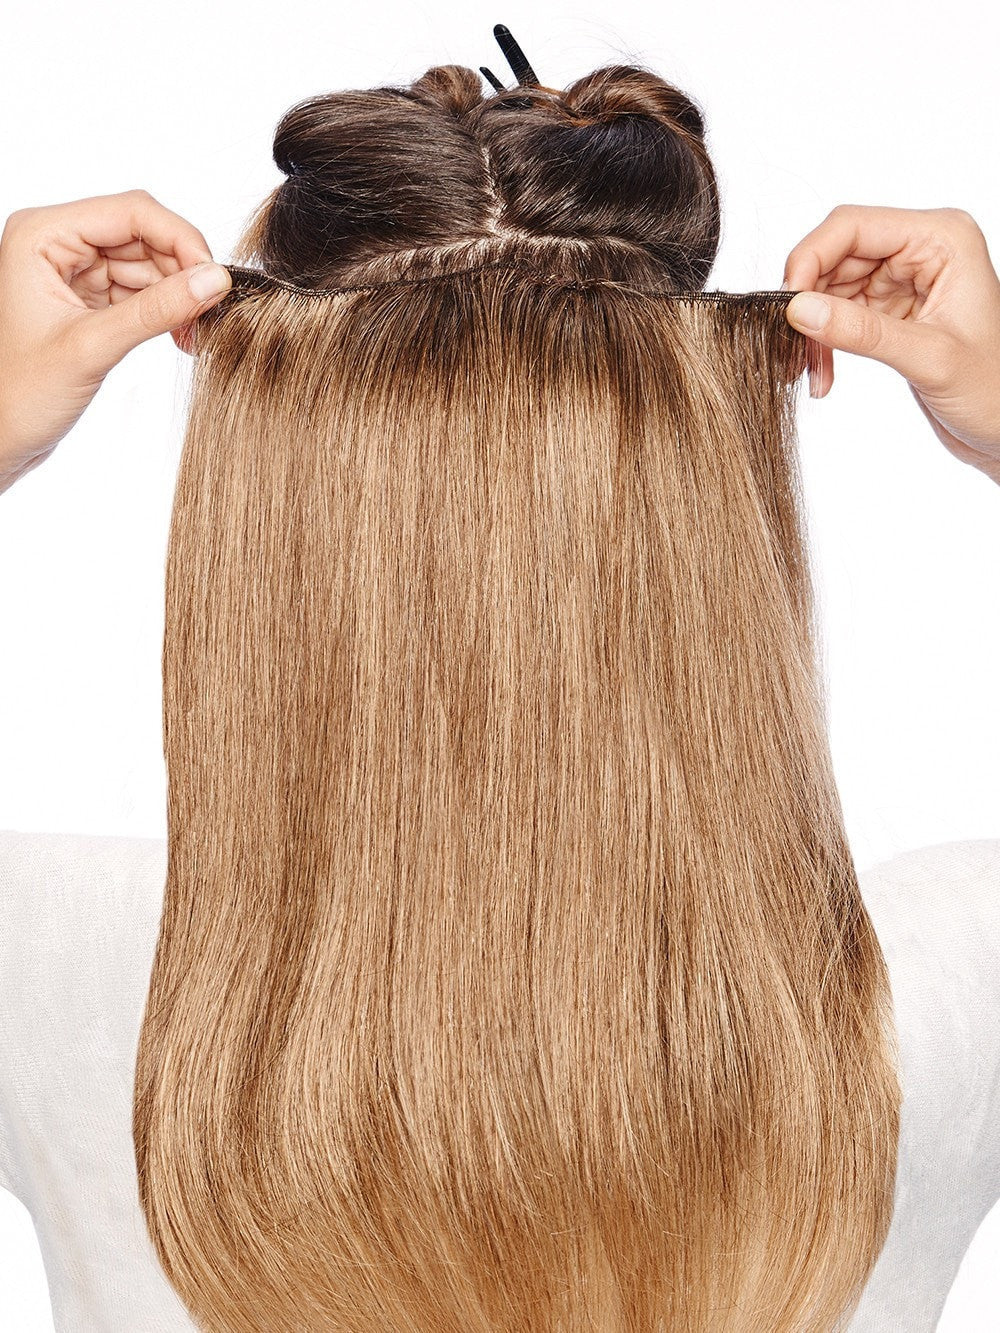 21 Straight Extension Hair Extensions